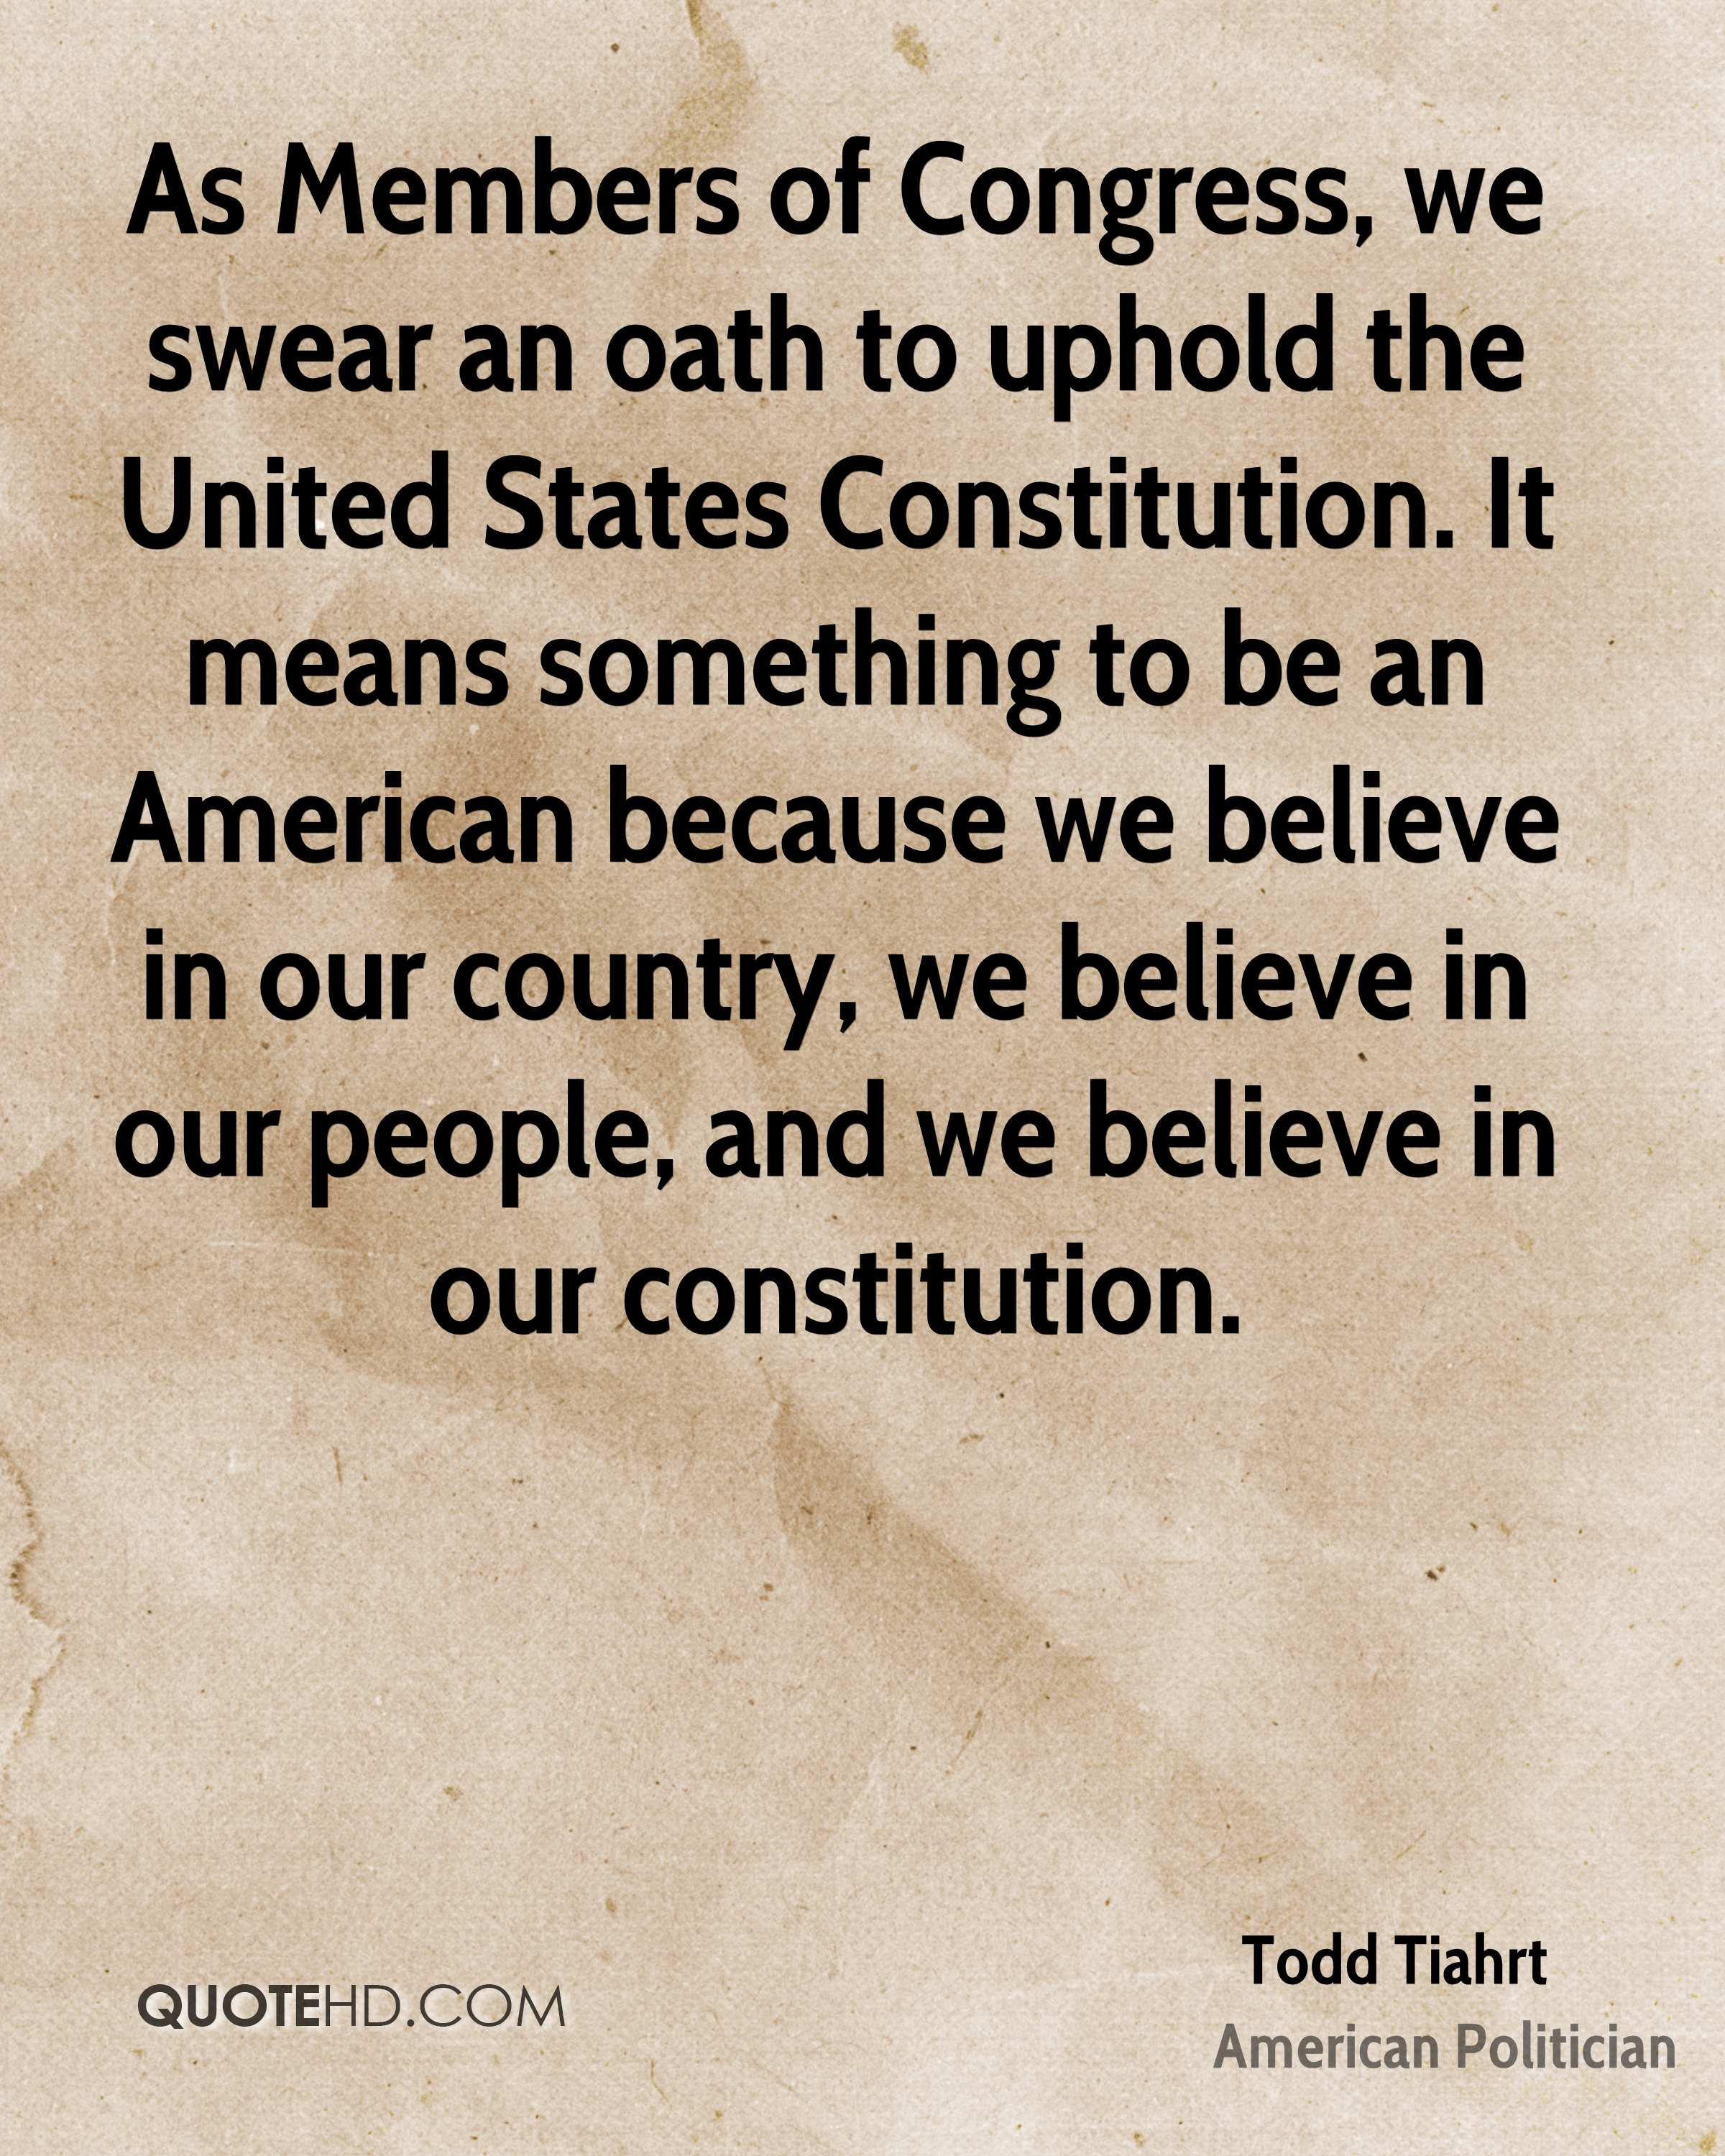 As Members of Congress, we swear an oath to uphold the United States Constitution. It means something to be an American because we believe in our country, we believe in our people, and we believe in our constitution.